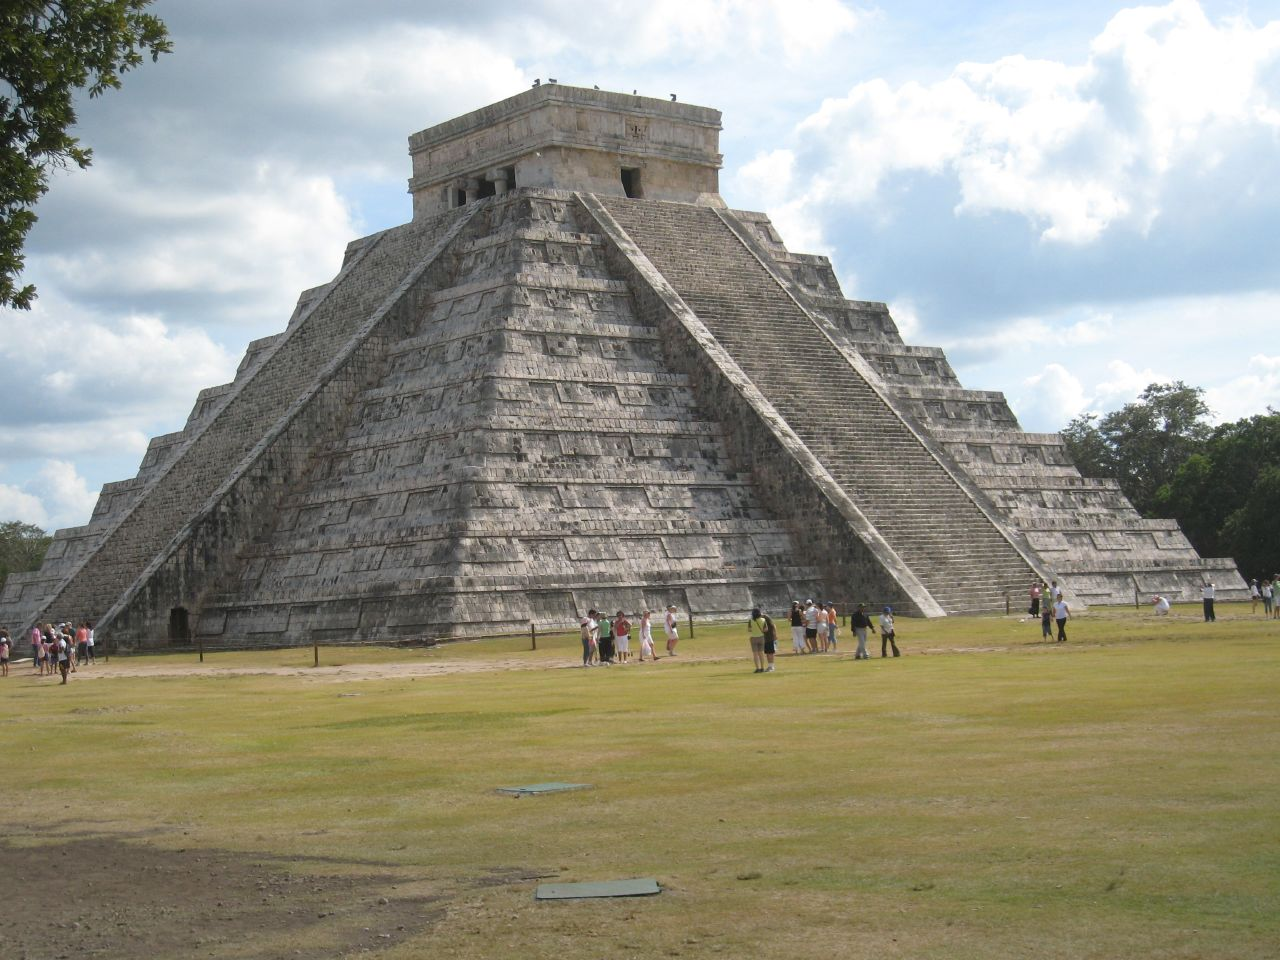 El Castillo - Temple of Kukulkan